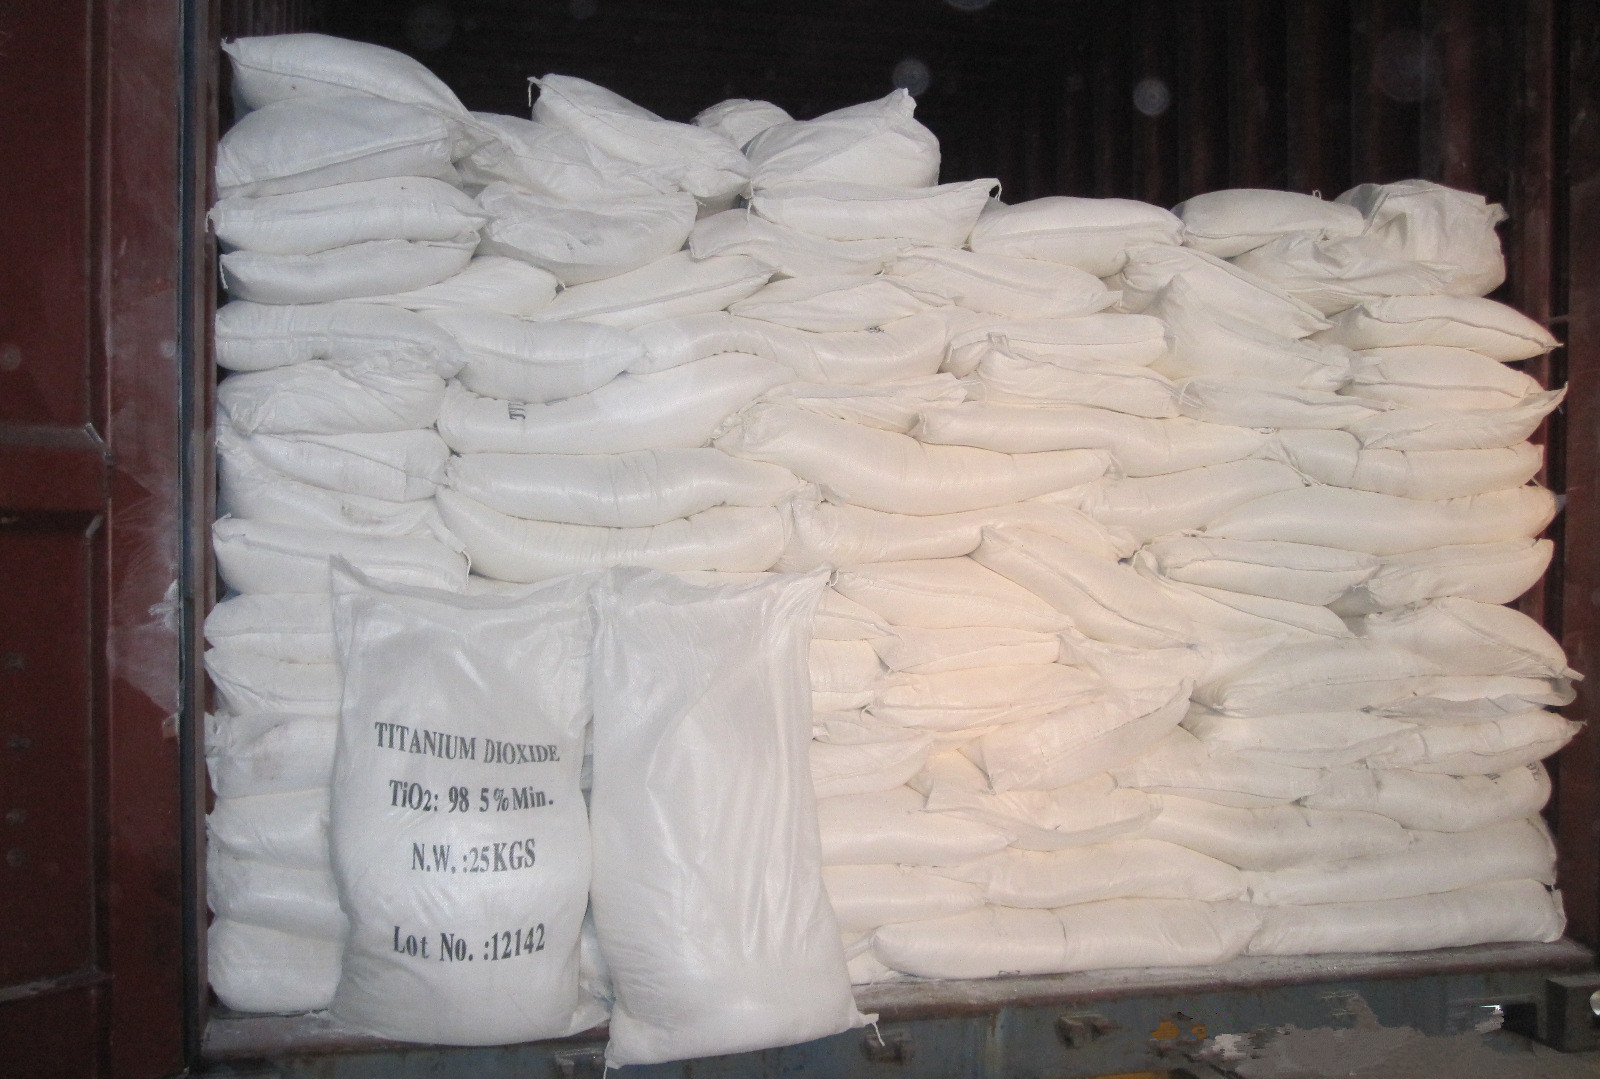 Reach Registered/ Ceramic Industry Anatase Titanium Dioxide Enamel Grade in white powder